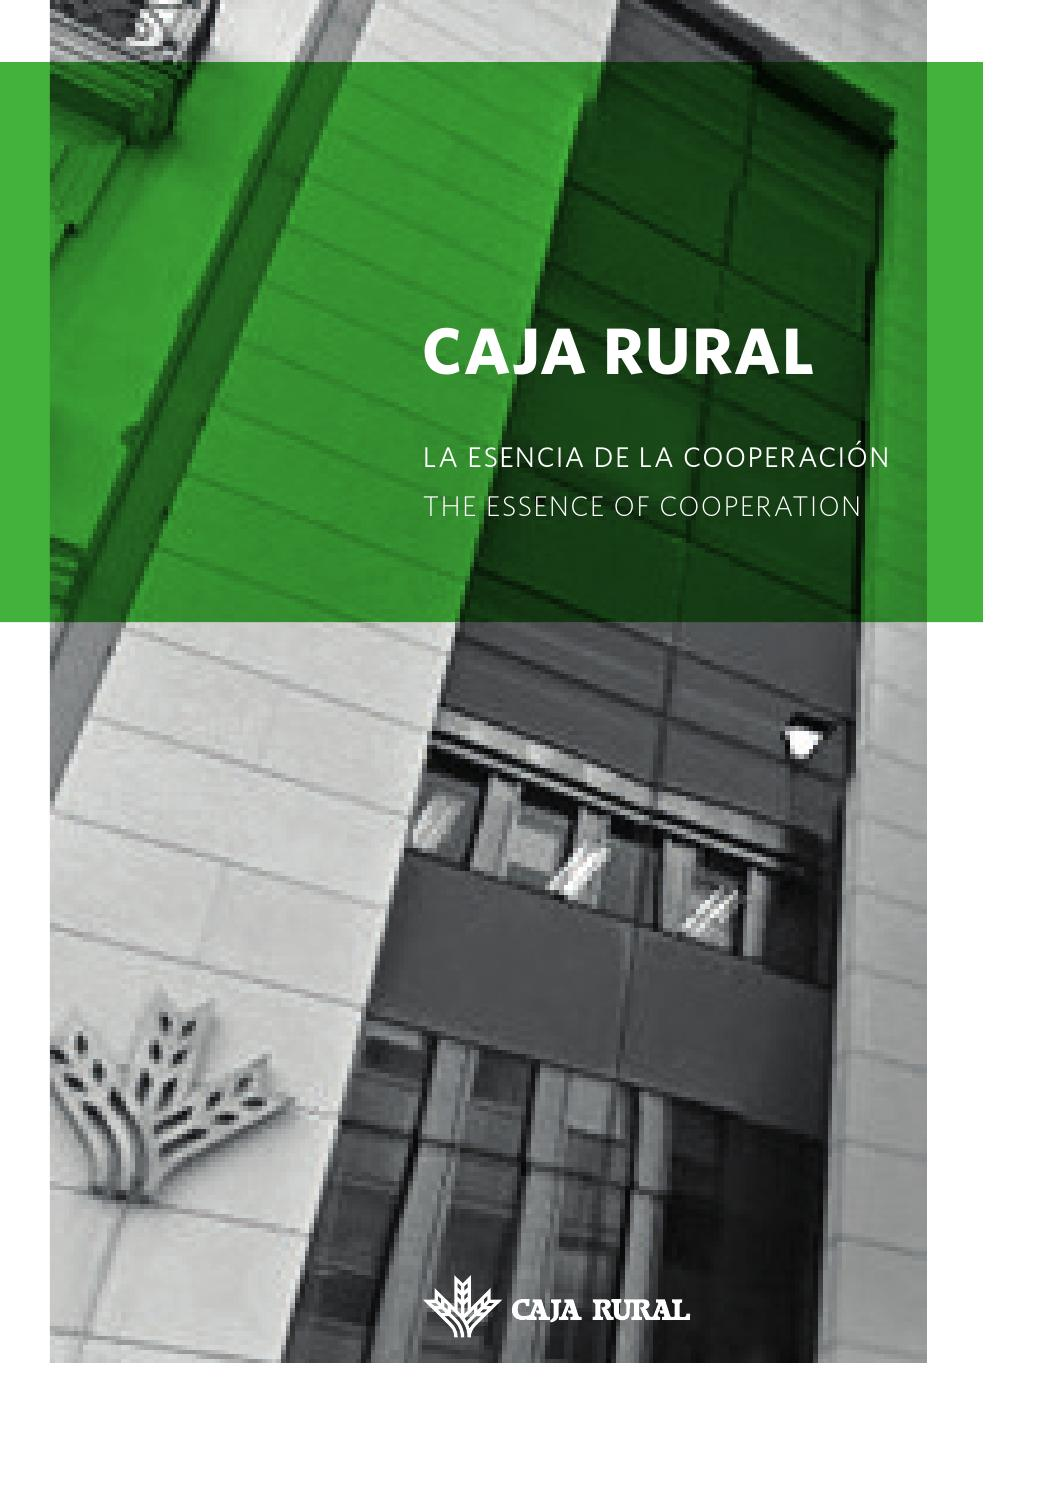 Caja rural folleto 3 by andra piscaer issuu for Oficinas de caja rural